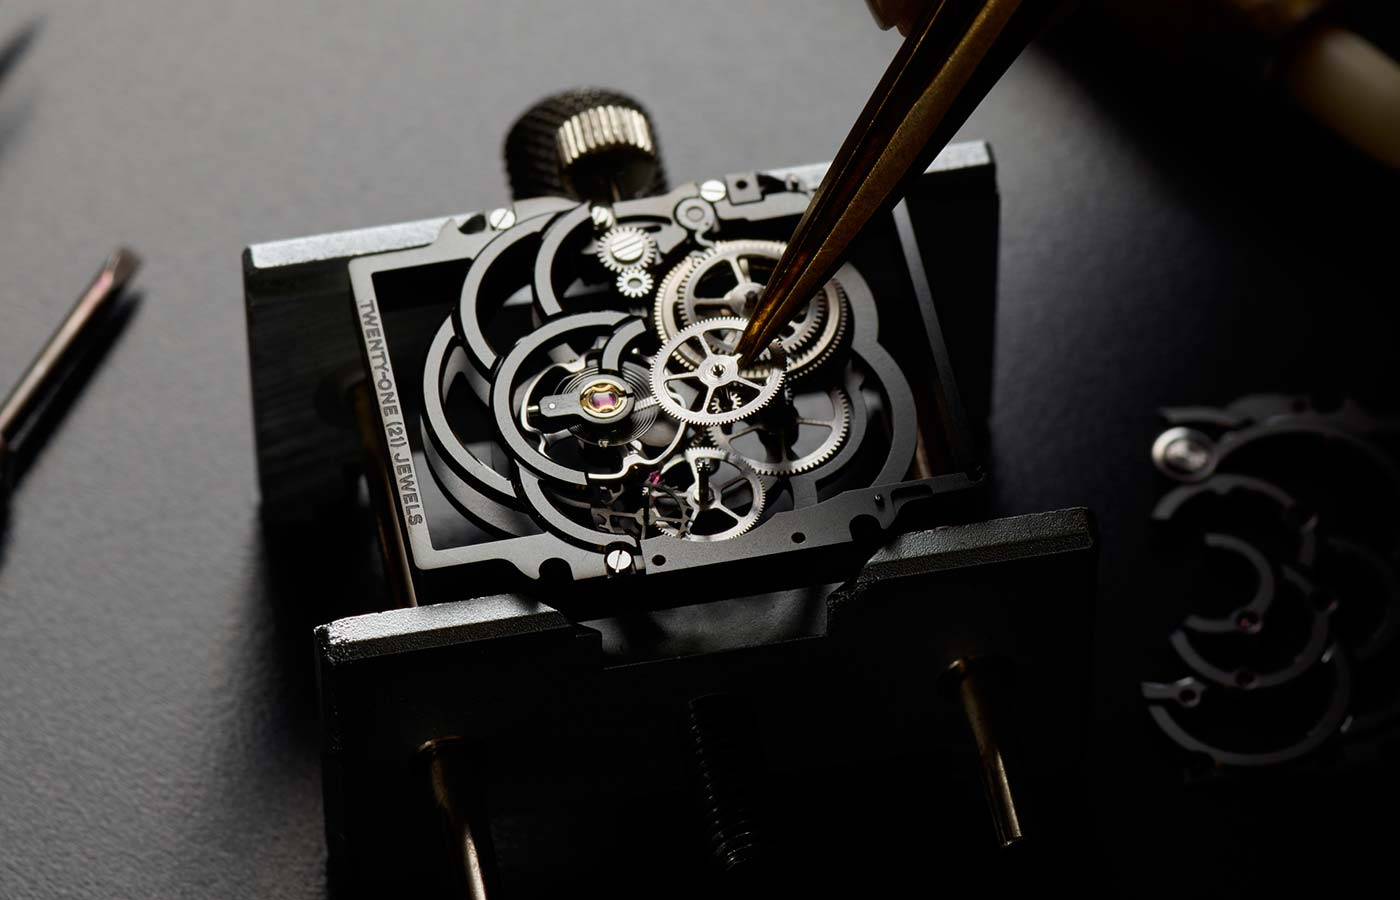 817d987954 Fine Watchmaking watches with Exceptional Movements - CHANEL